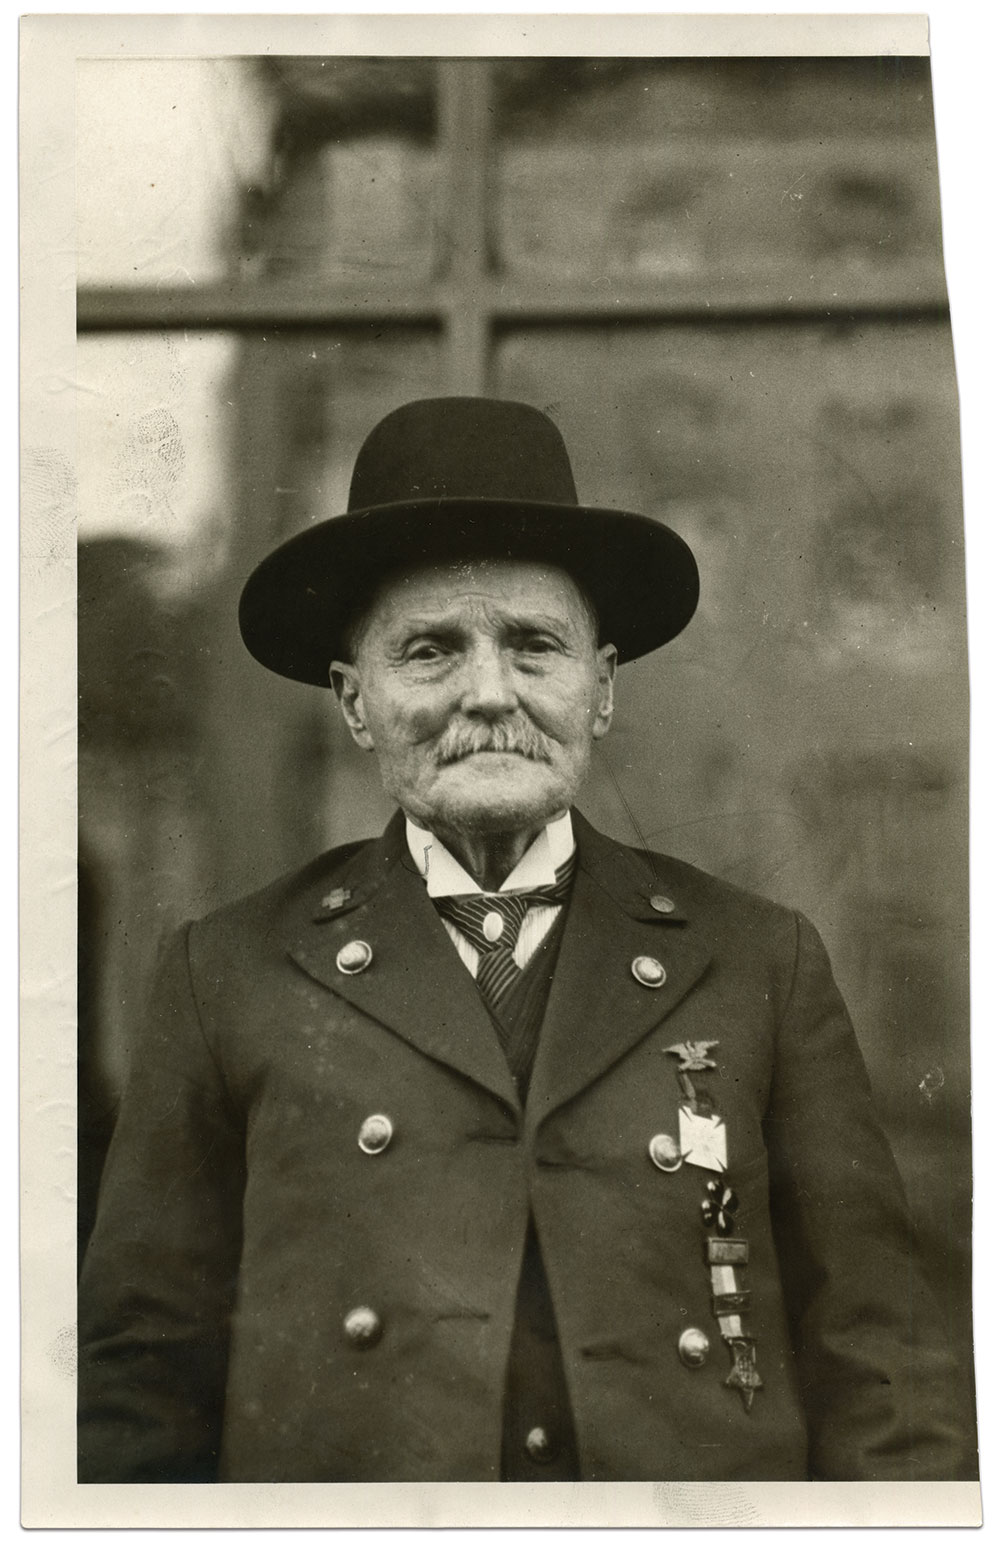 Capt. Fisher in Baltimore at a meeting of the Grand Army of the Republic, Department of Maryland, in 1924. He wears various insignia on his coat. From top to bottom, a veteran's badge denoting his service in Warren's 5th Corps, the red four-leaf clover corps badge from his service in the 1st Division, 2nd Corps during the War with Spain, and a G.A.R. medal.  He also sports G.A.R and United Spanish War Veterans lapel pins. Press photo by an anonymous photographer. Author's Collection.